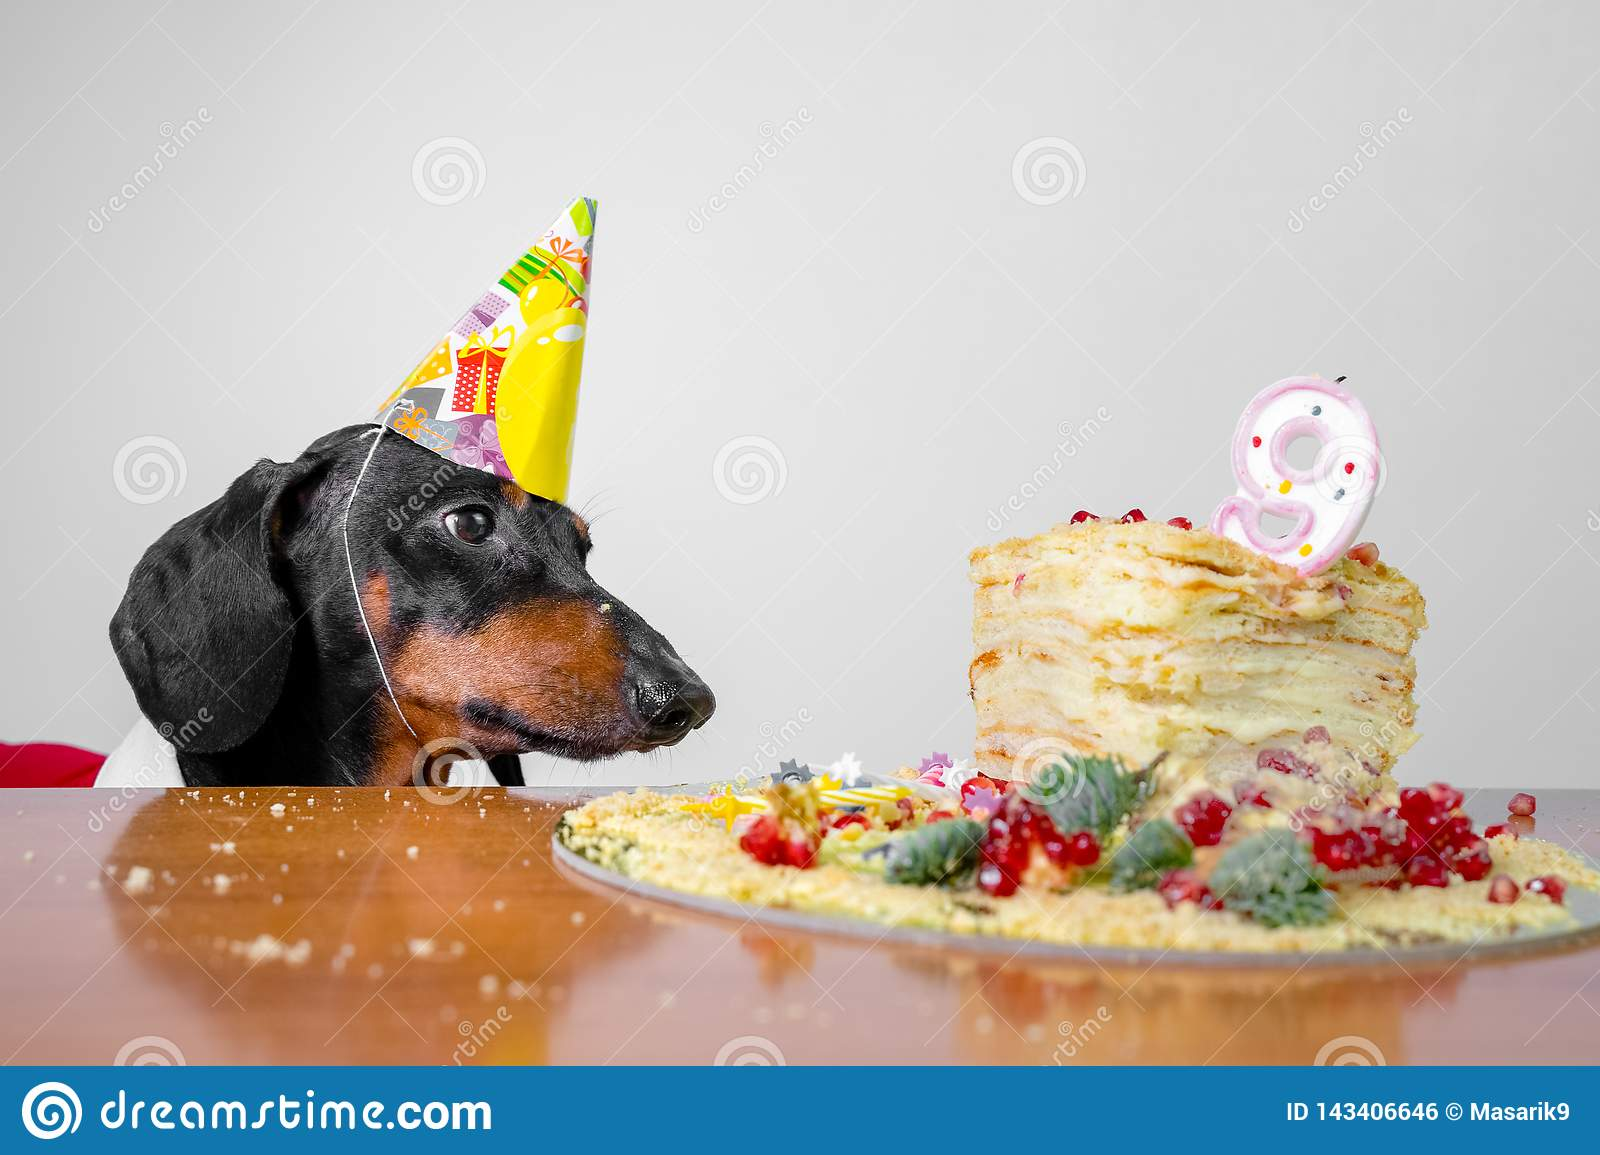 Cute Dog Breed Dachshund Black And Tan Hungry For A Happy Birthday Cake With Candles Number 9 Wearing Party Hat On White